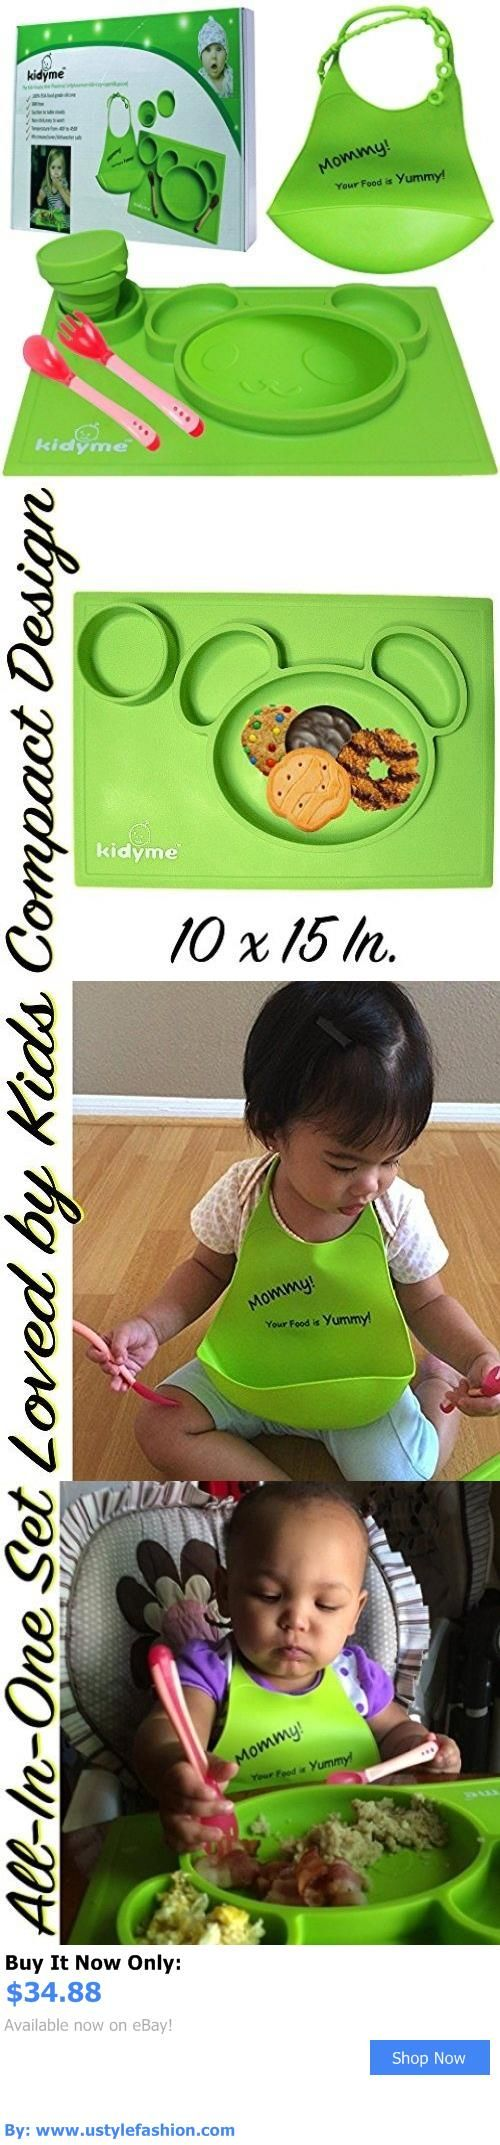 Baby Feeding Sets: Silicone Placemat And Bib Set By Kidyme? All-In-One Kids Flatware Dining Tray BUY IT NOW ONLY: $34.88 #ustylefashionBabyFeedingSets OR #ustylefashion